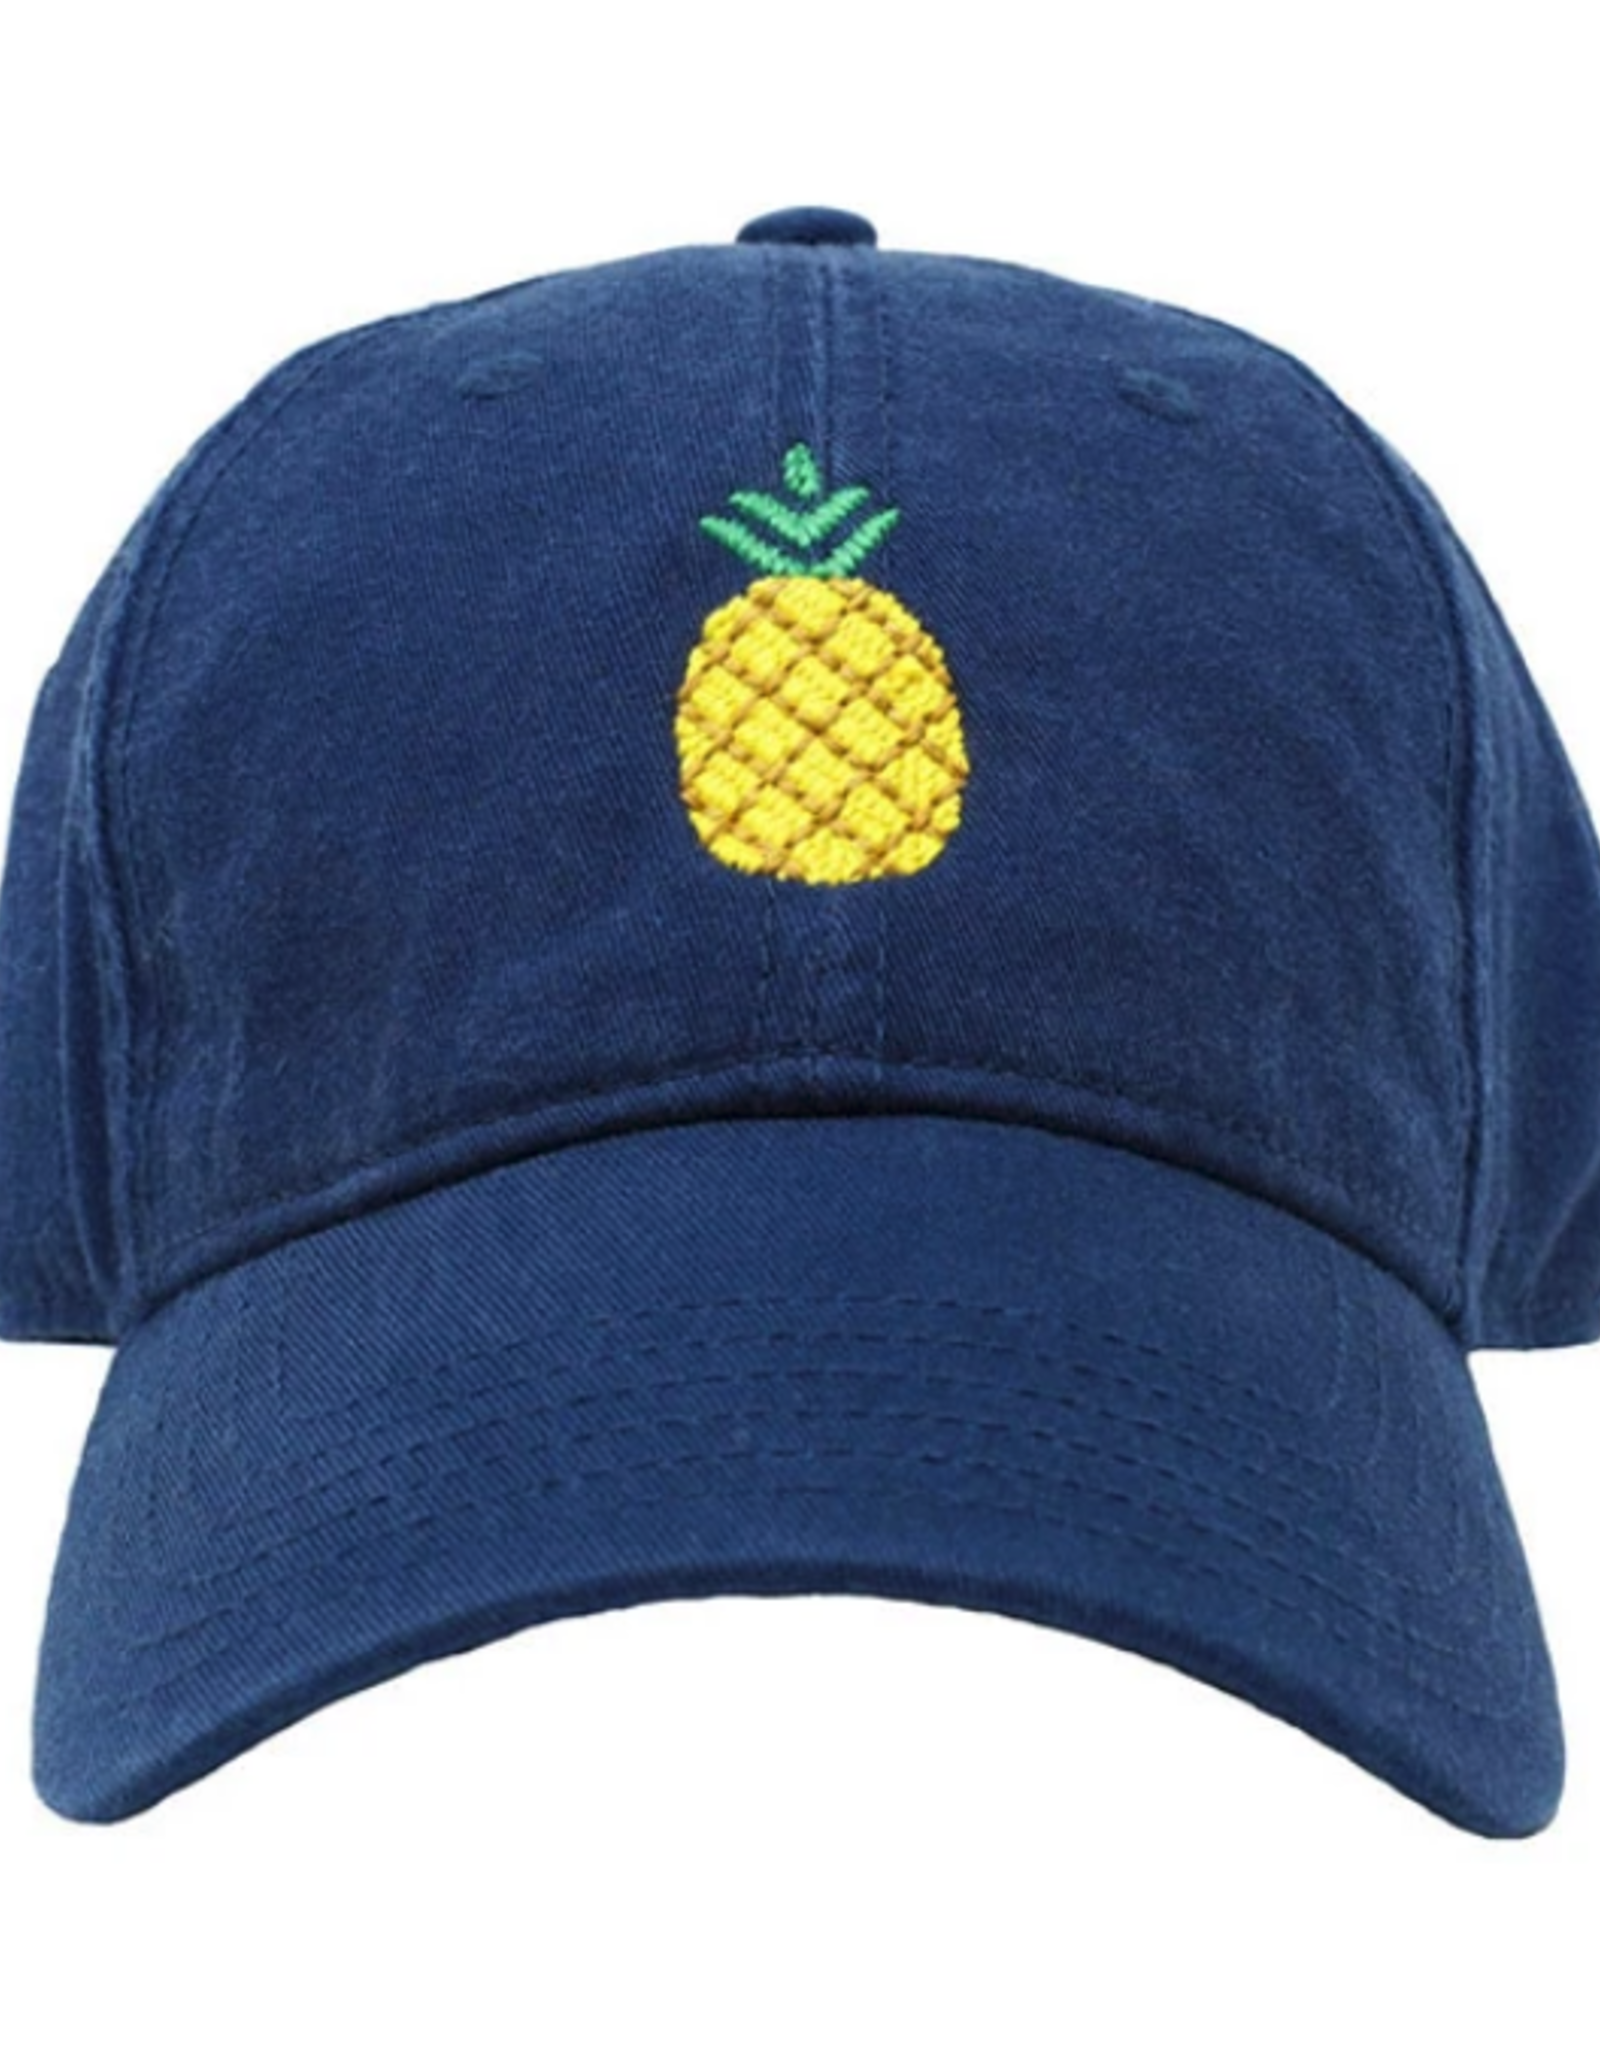 Harding Lane Harding Lane - Pineapple on Navy Adult Hat